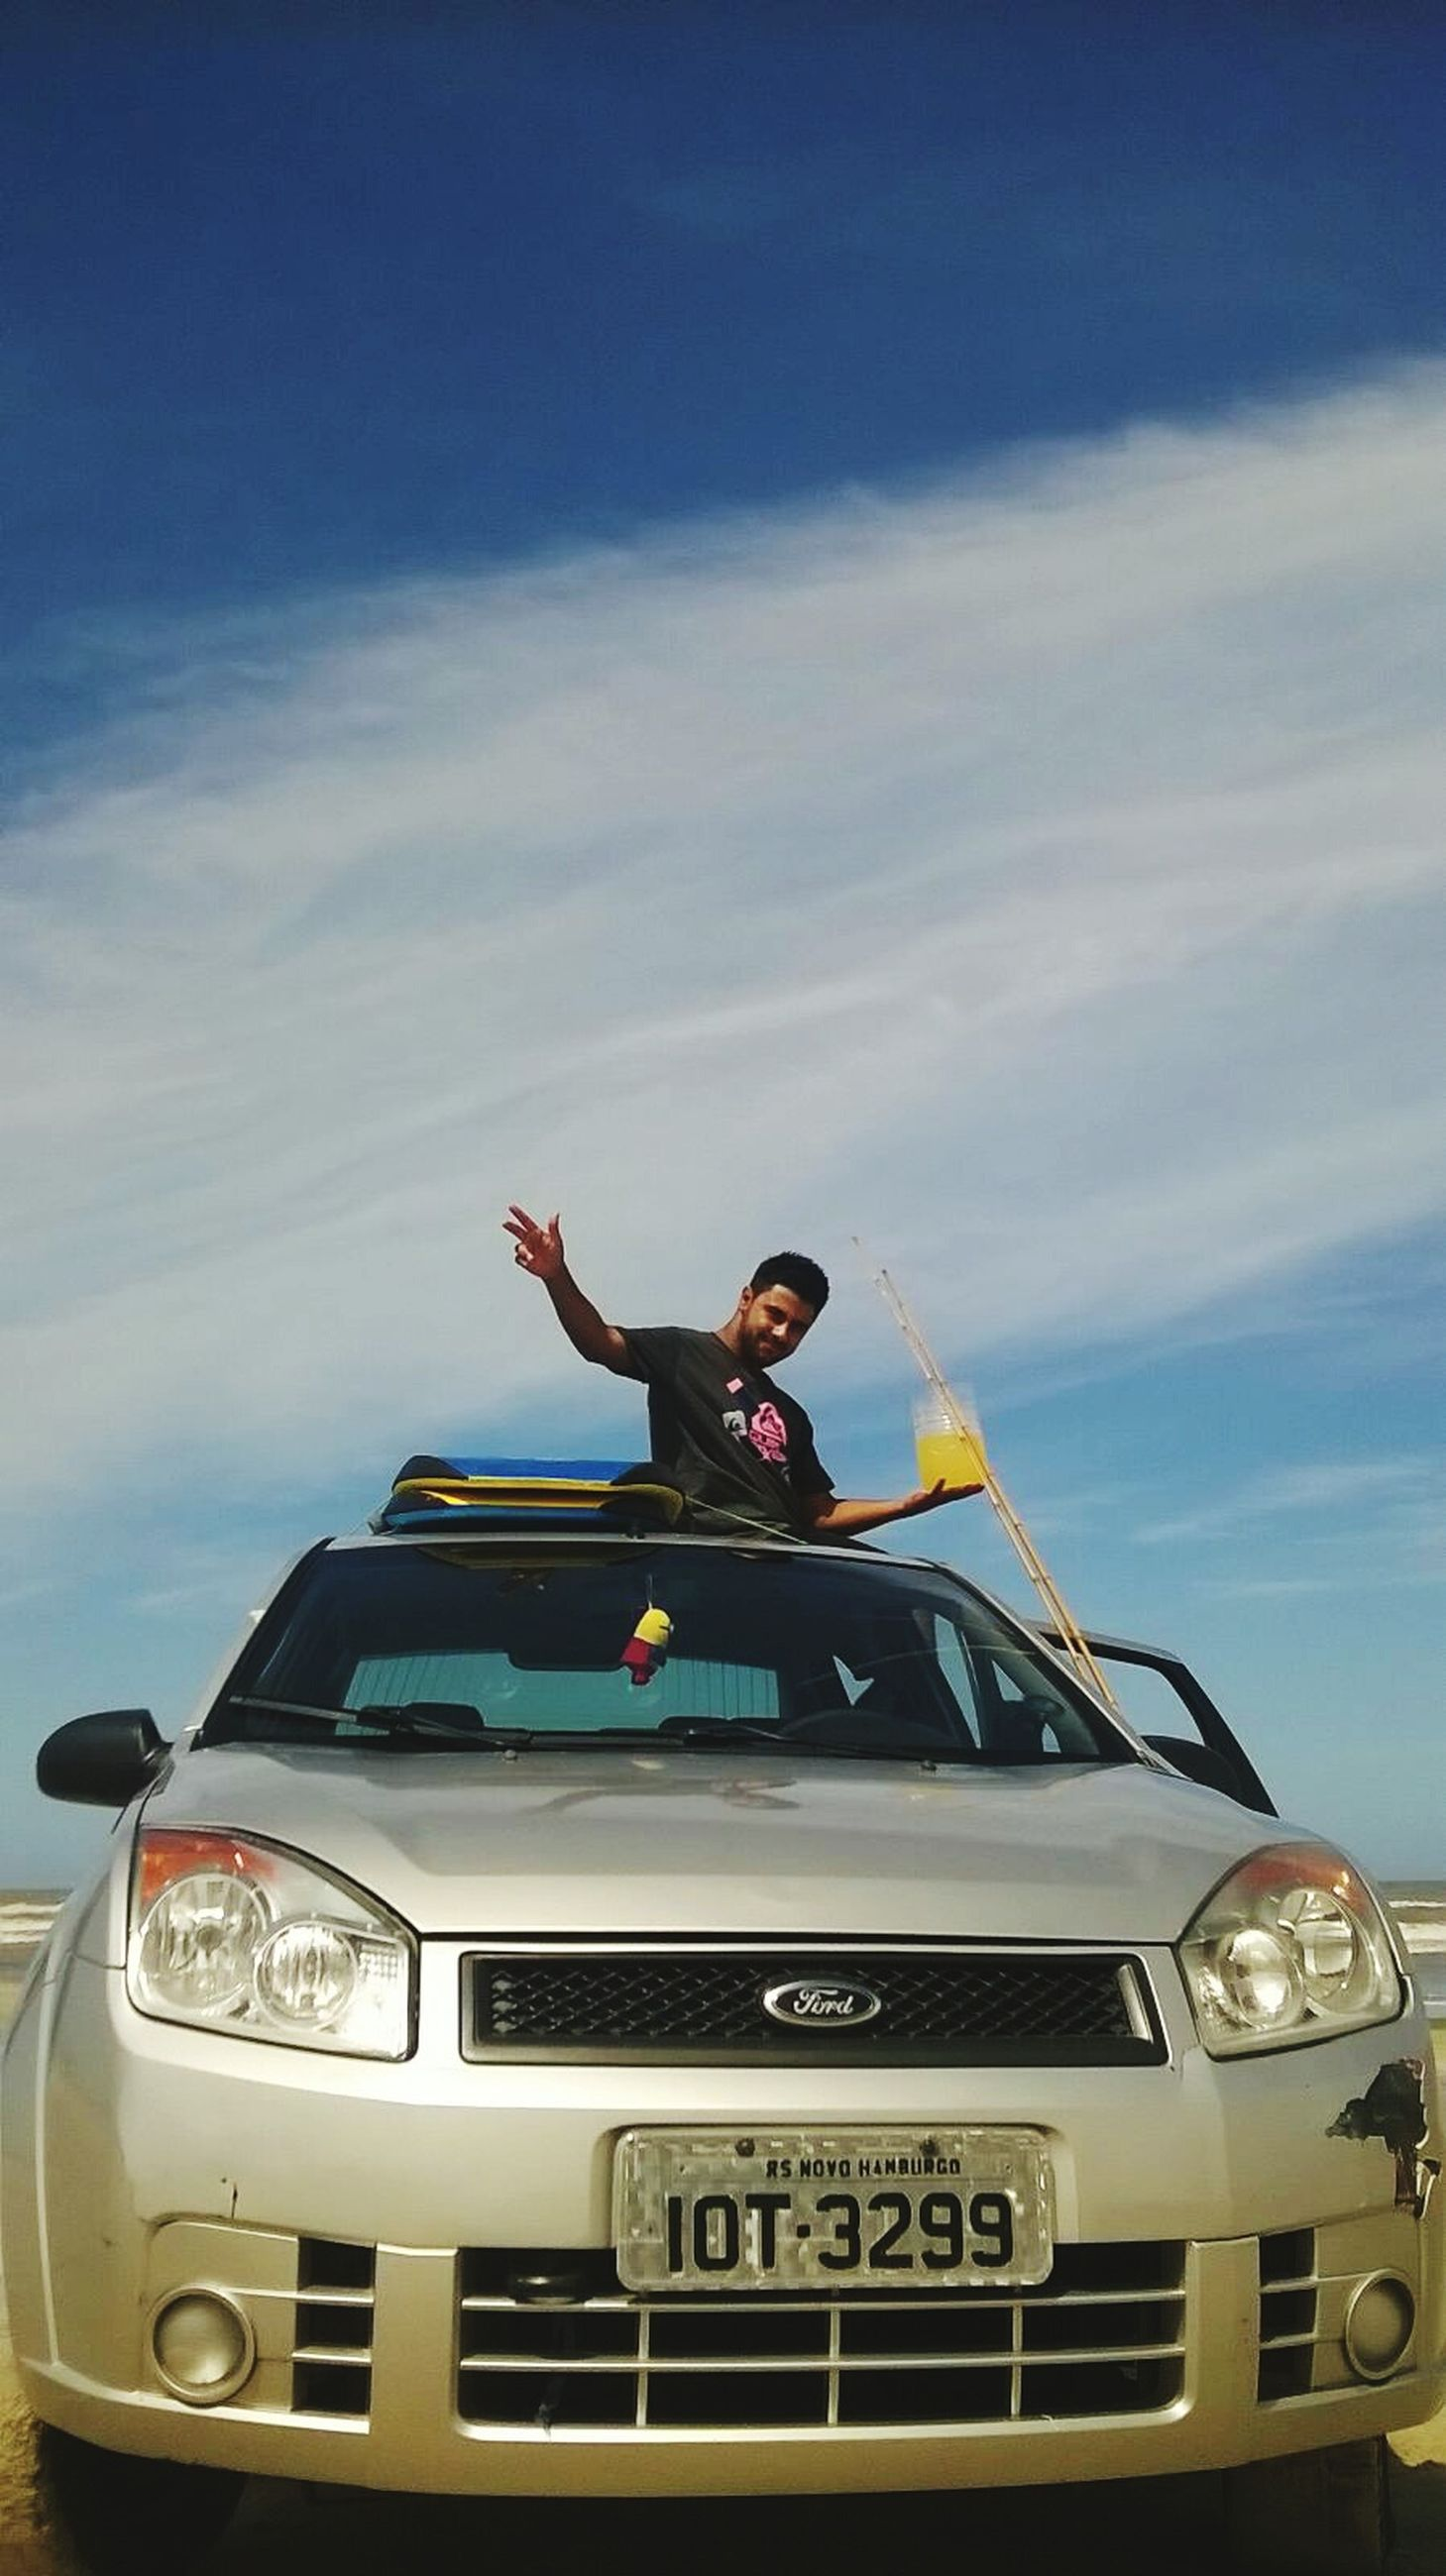 person, young adult, lifestyles, mode of transport, transportation, low angle view, leisure activity, sky, young men, front view, casual clothing, full length, looking at camera, sitting, smiling, cloud - sky, land vehicle, travel